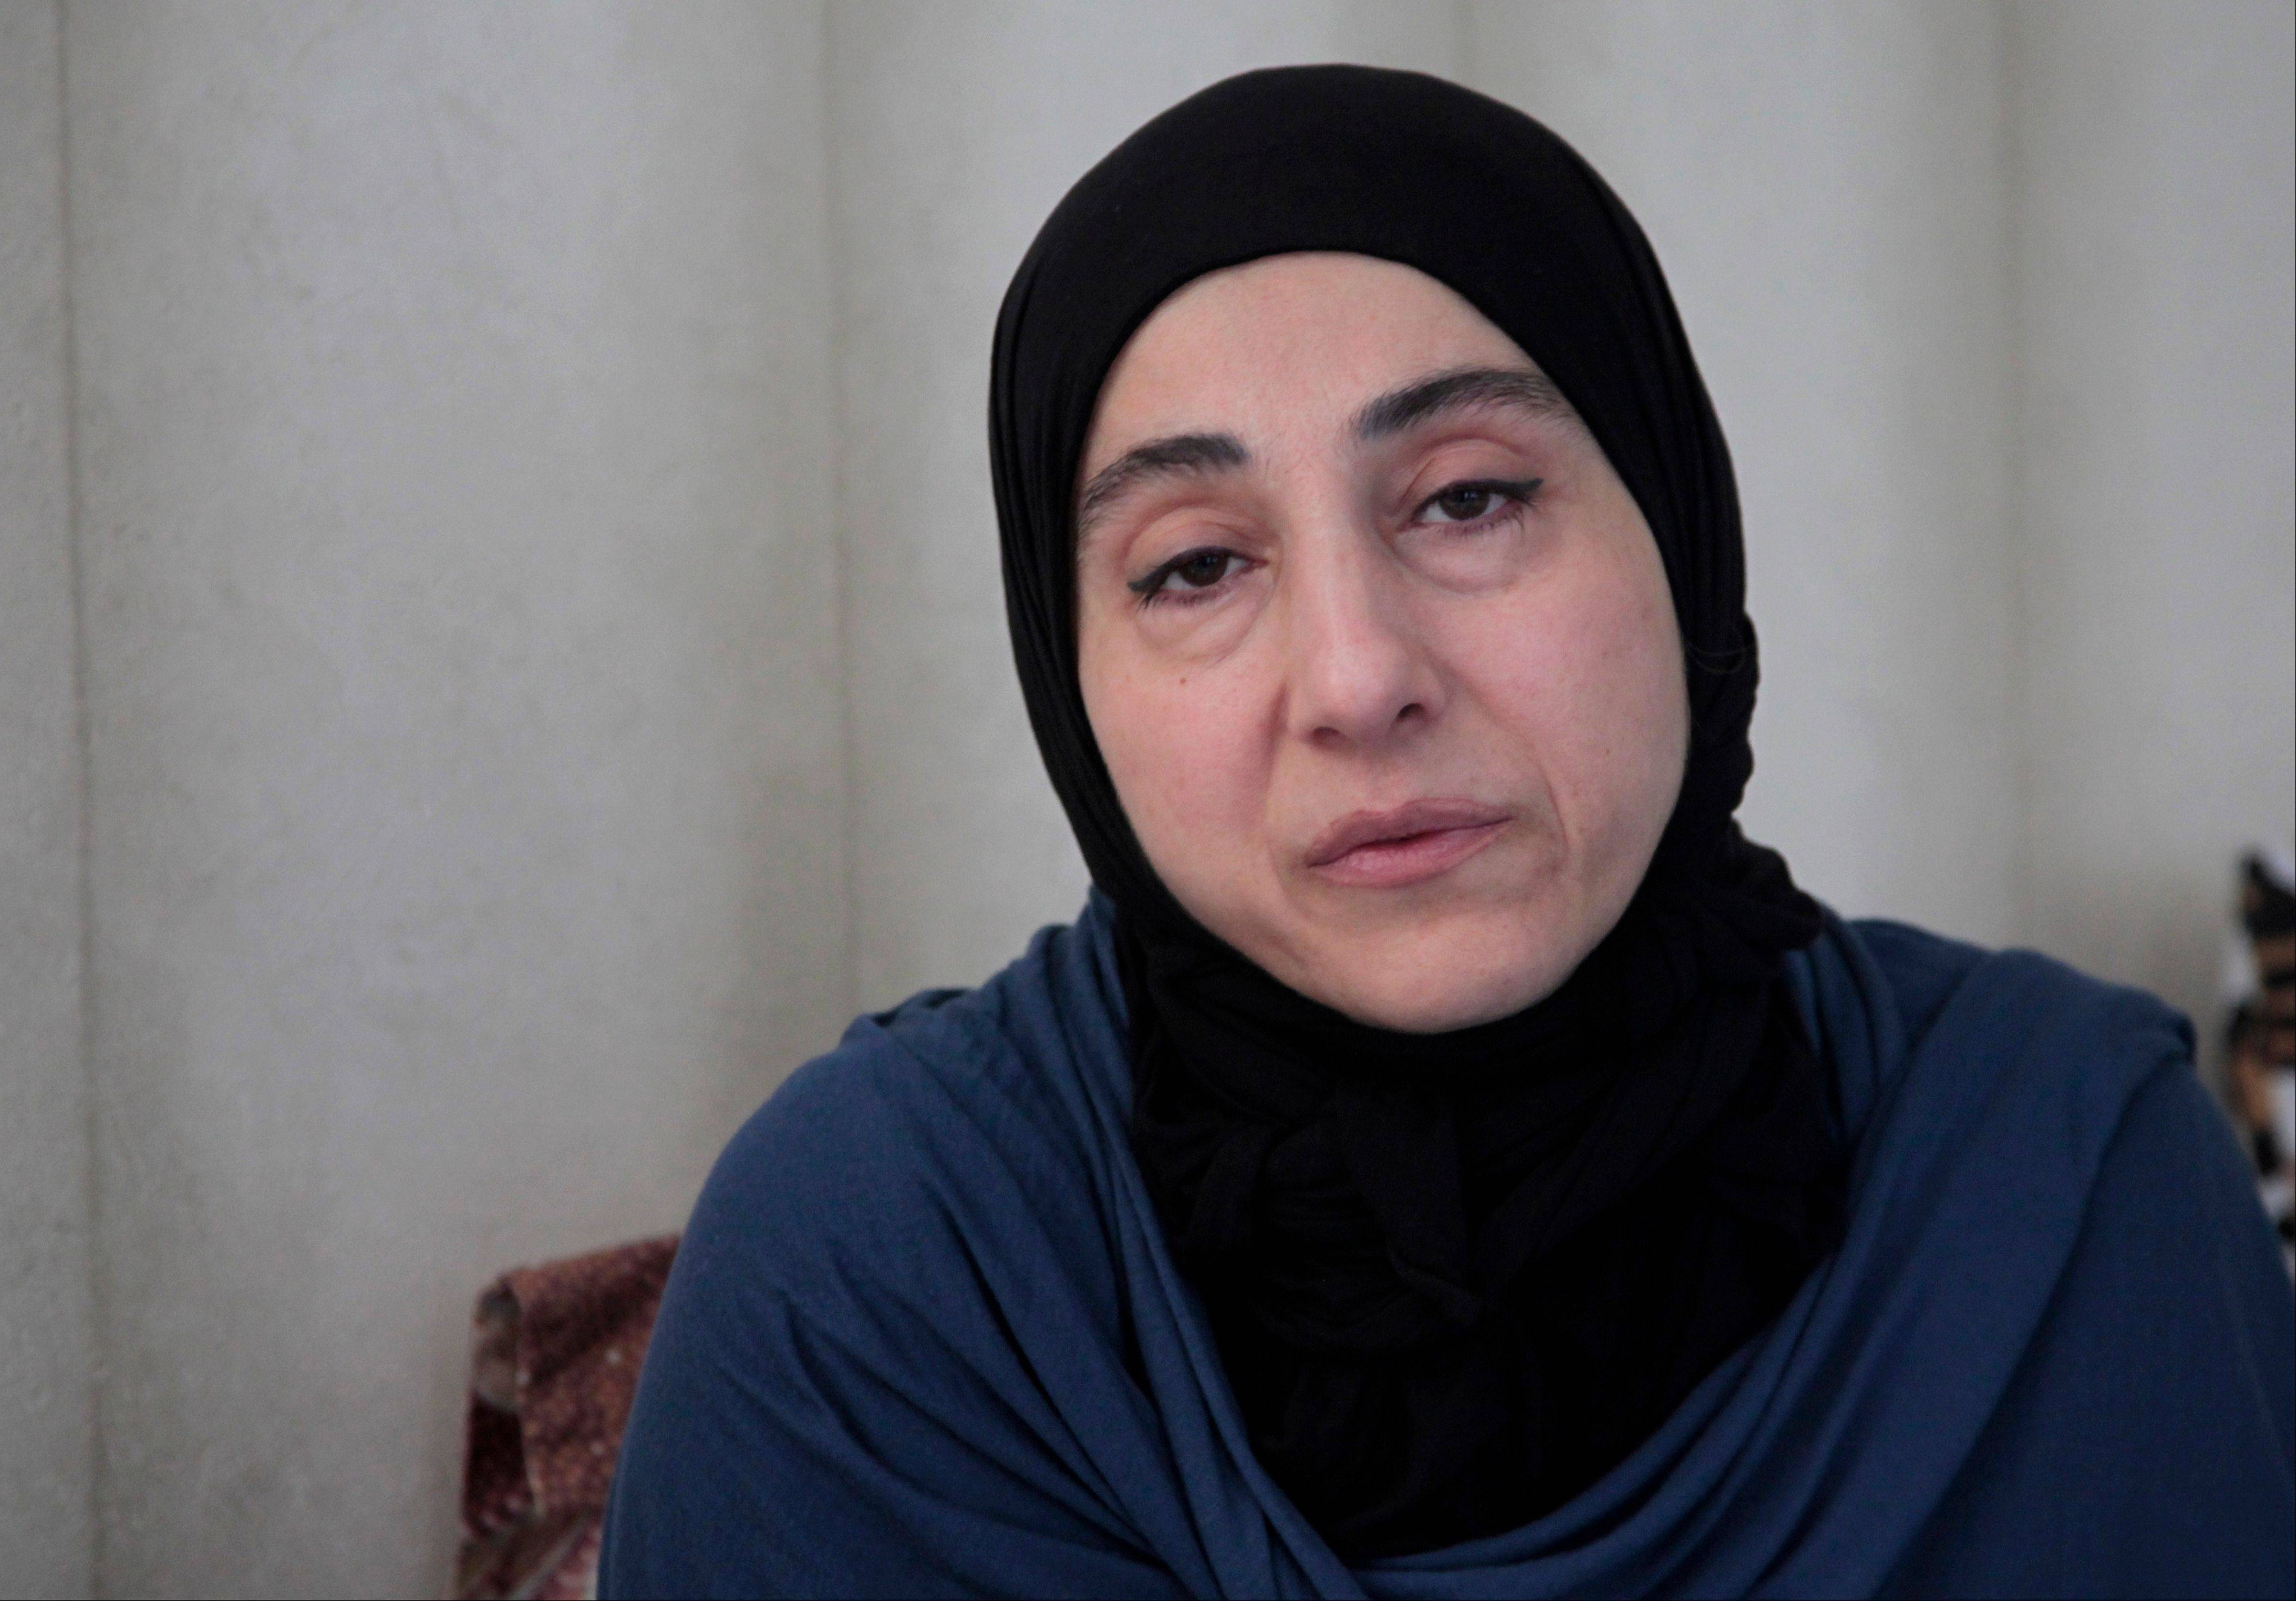 Zubeidat Tsarnaeva, mother of the two Boston bombing suspects, speaks during a meeting of the Tsarnaevs with the AP in Makhachkala, regional capital of Dagestan, Russia, Thursday. Authorities accuse Tamerlan Tsarnaev, who was slain in a shootout with police, and his younger brother Dzhokhar of organizing the attacks, which killed three.